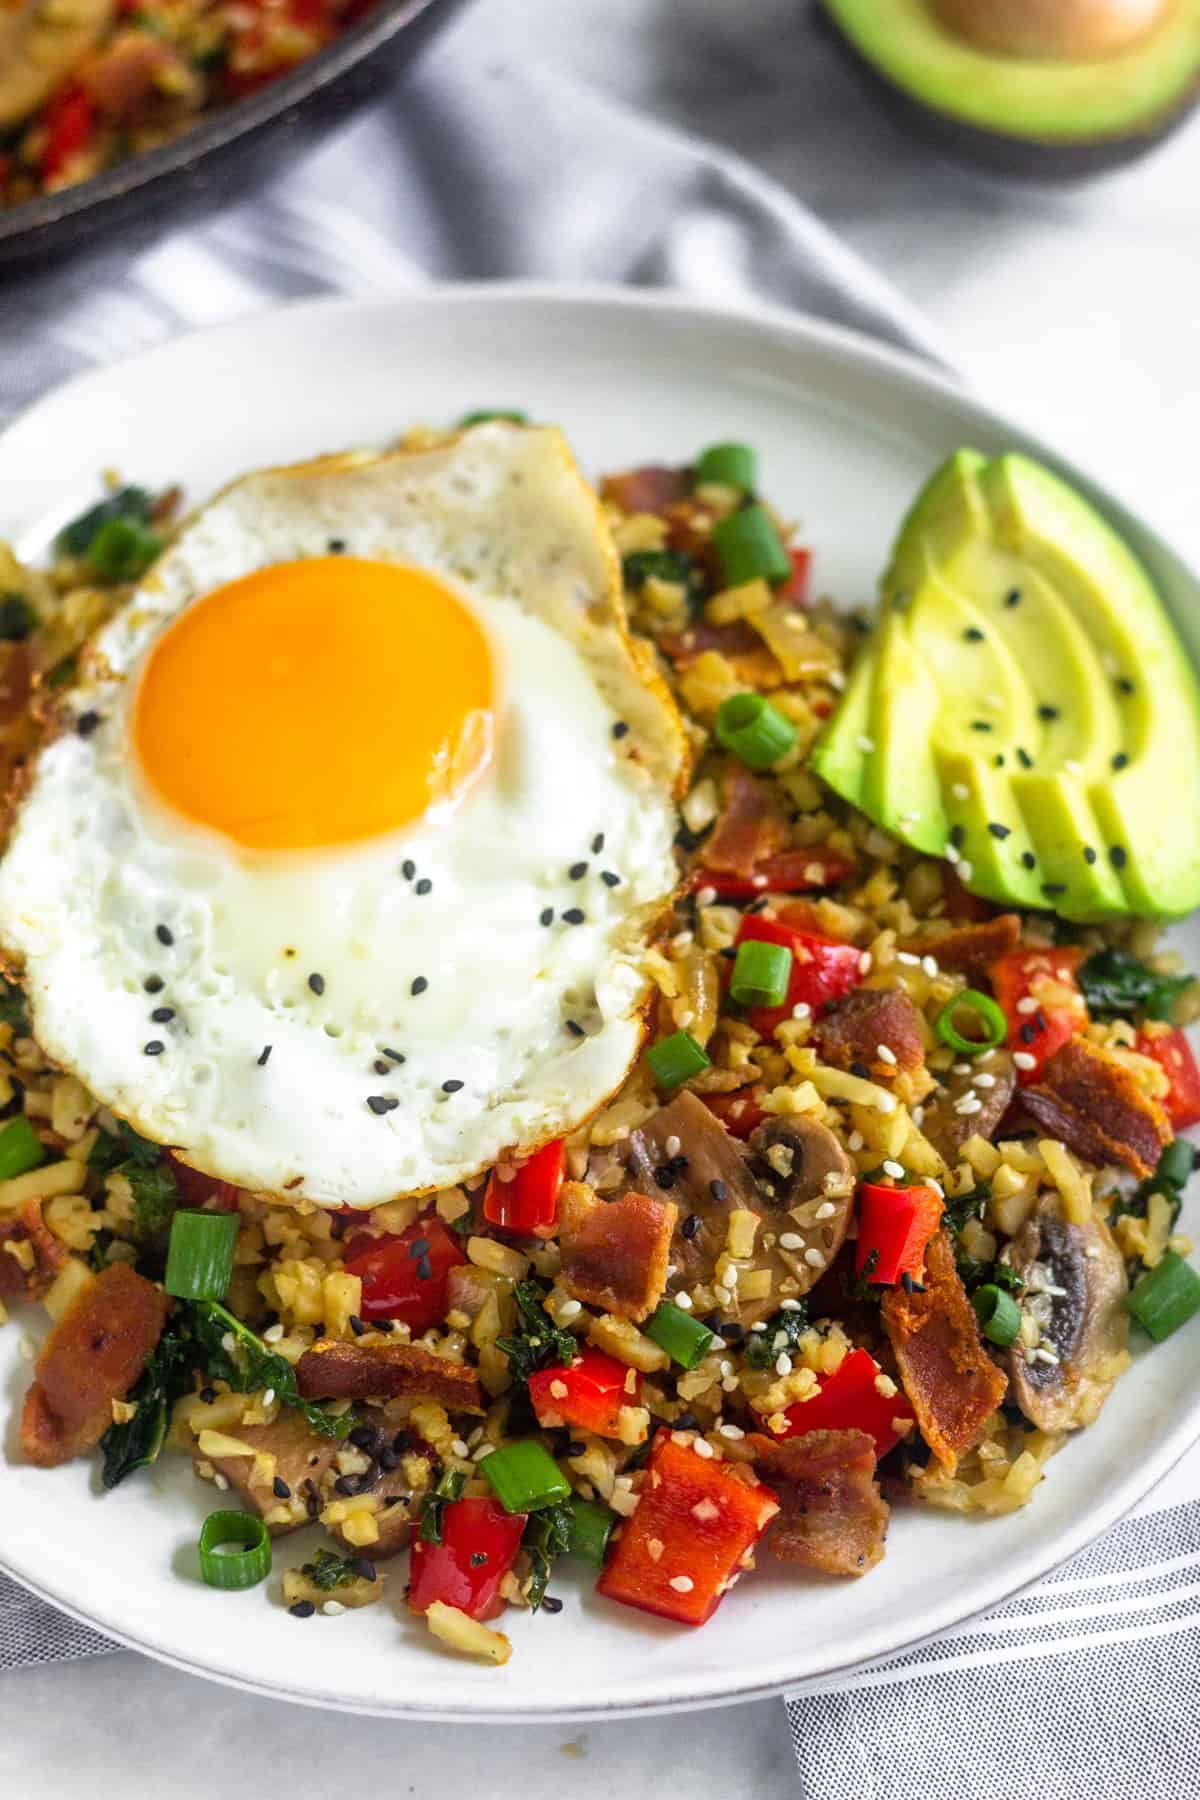 Large white plate filled with whole30 and paleo breakfast fried rice topped with a fried egg, avocado slices, and sesame seeds